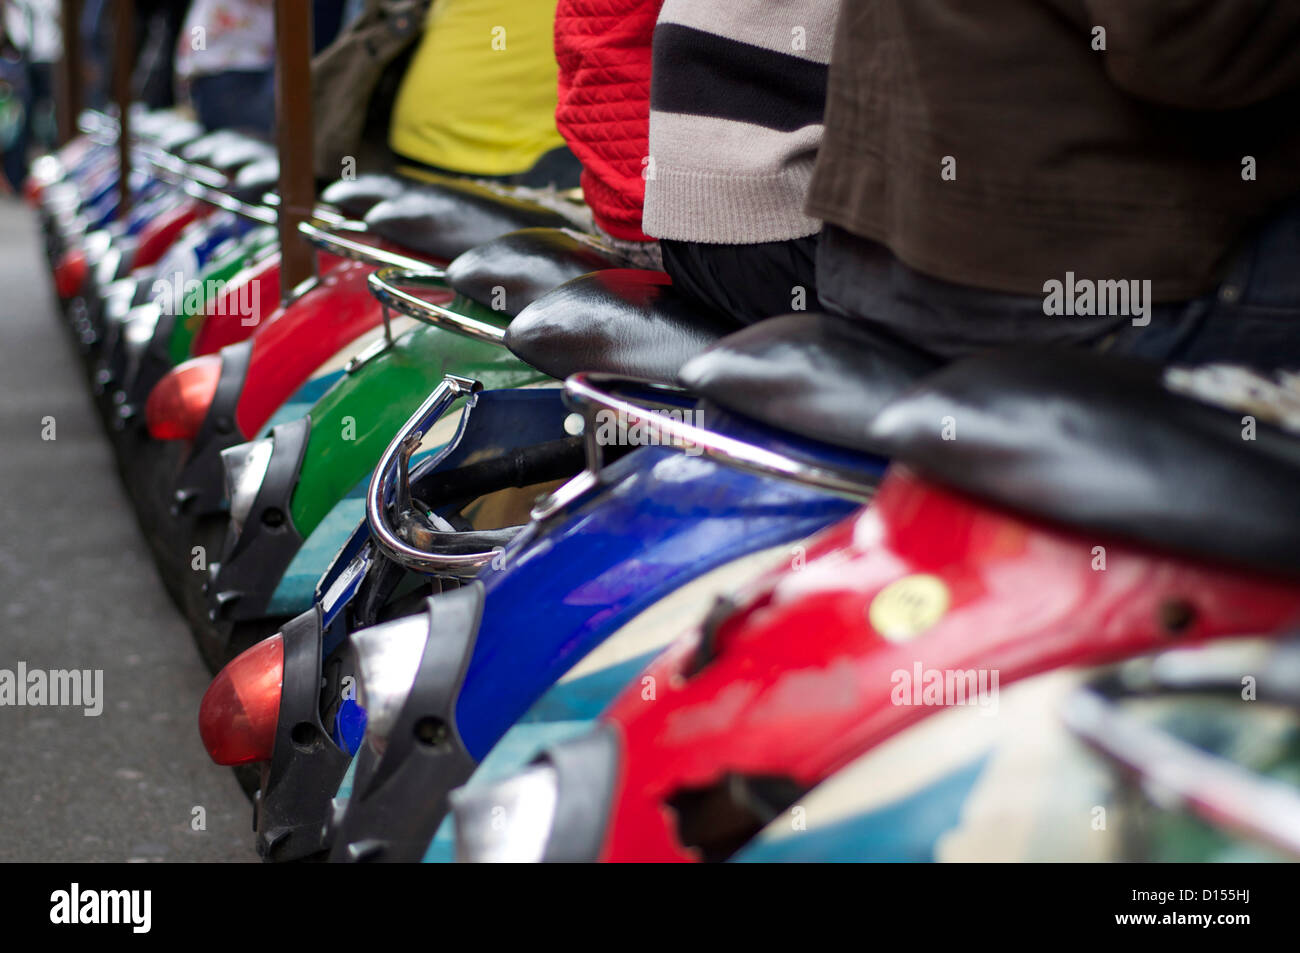 A row of mopeds lined up at a Camden market restaurant - Stock Image